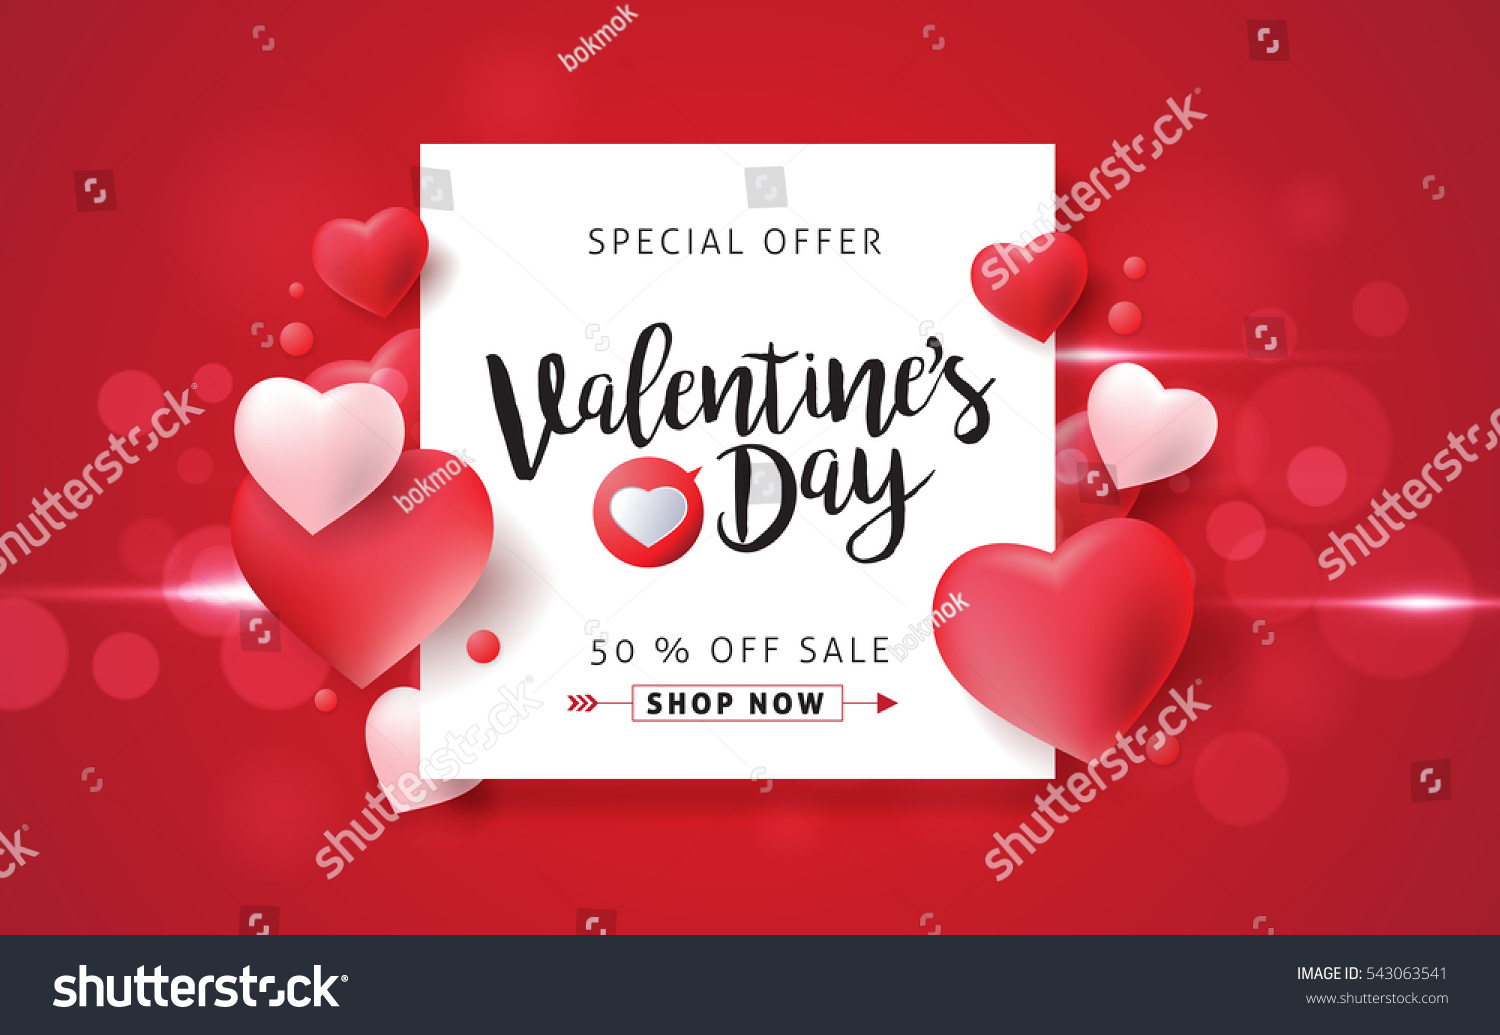 Valentines day sale background with balloons heart pattern. Vector illustration. Wallpaper, flyers, invitation, posters, brochure, banners. #543063541